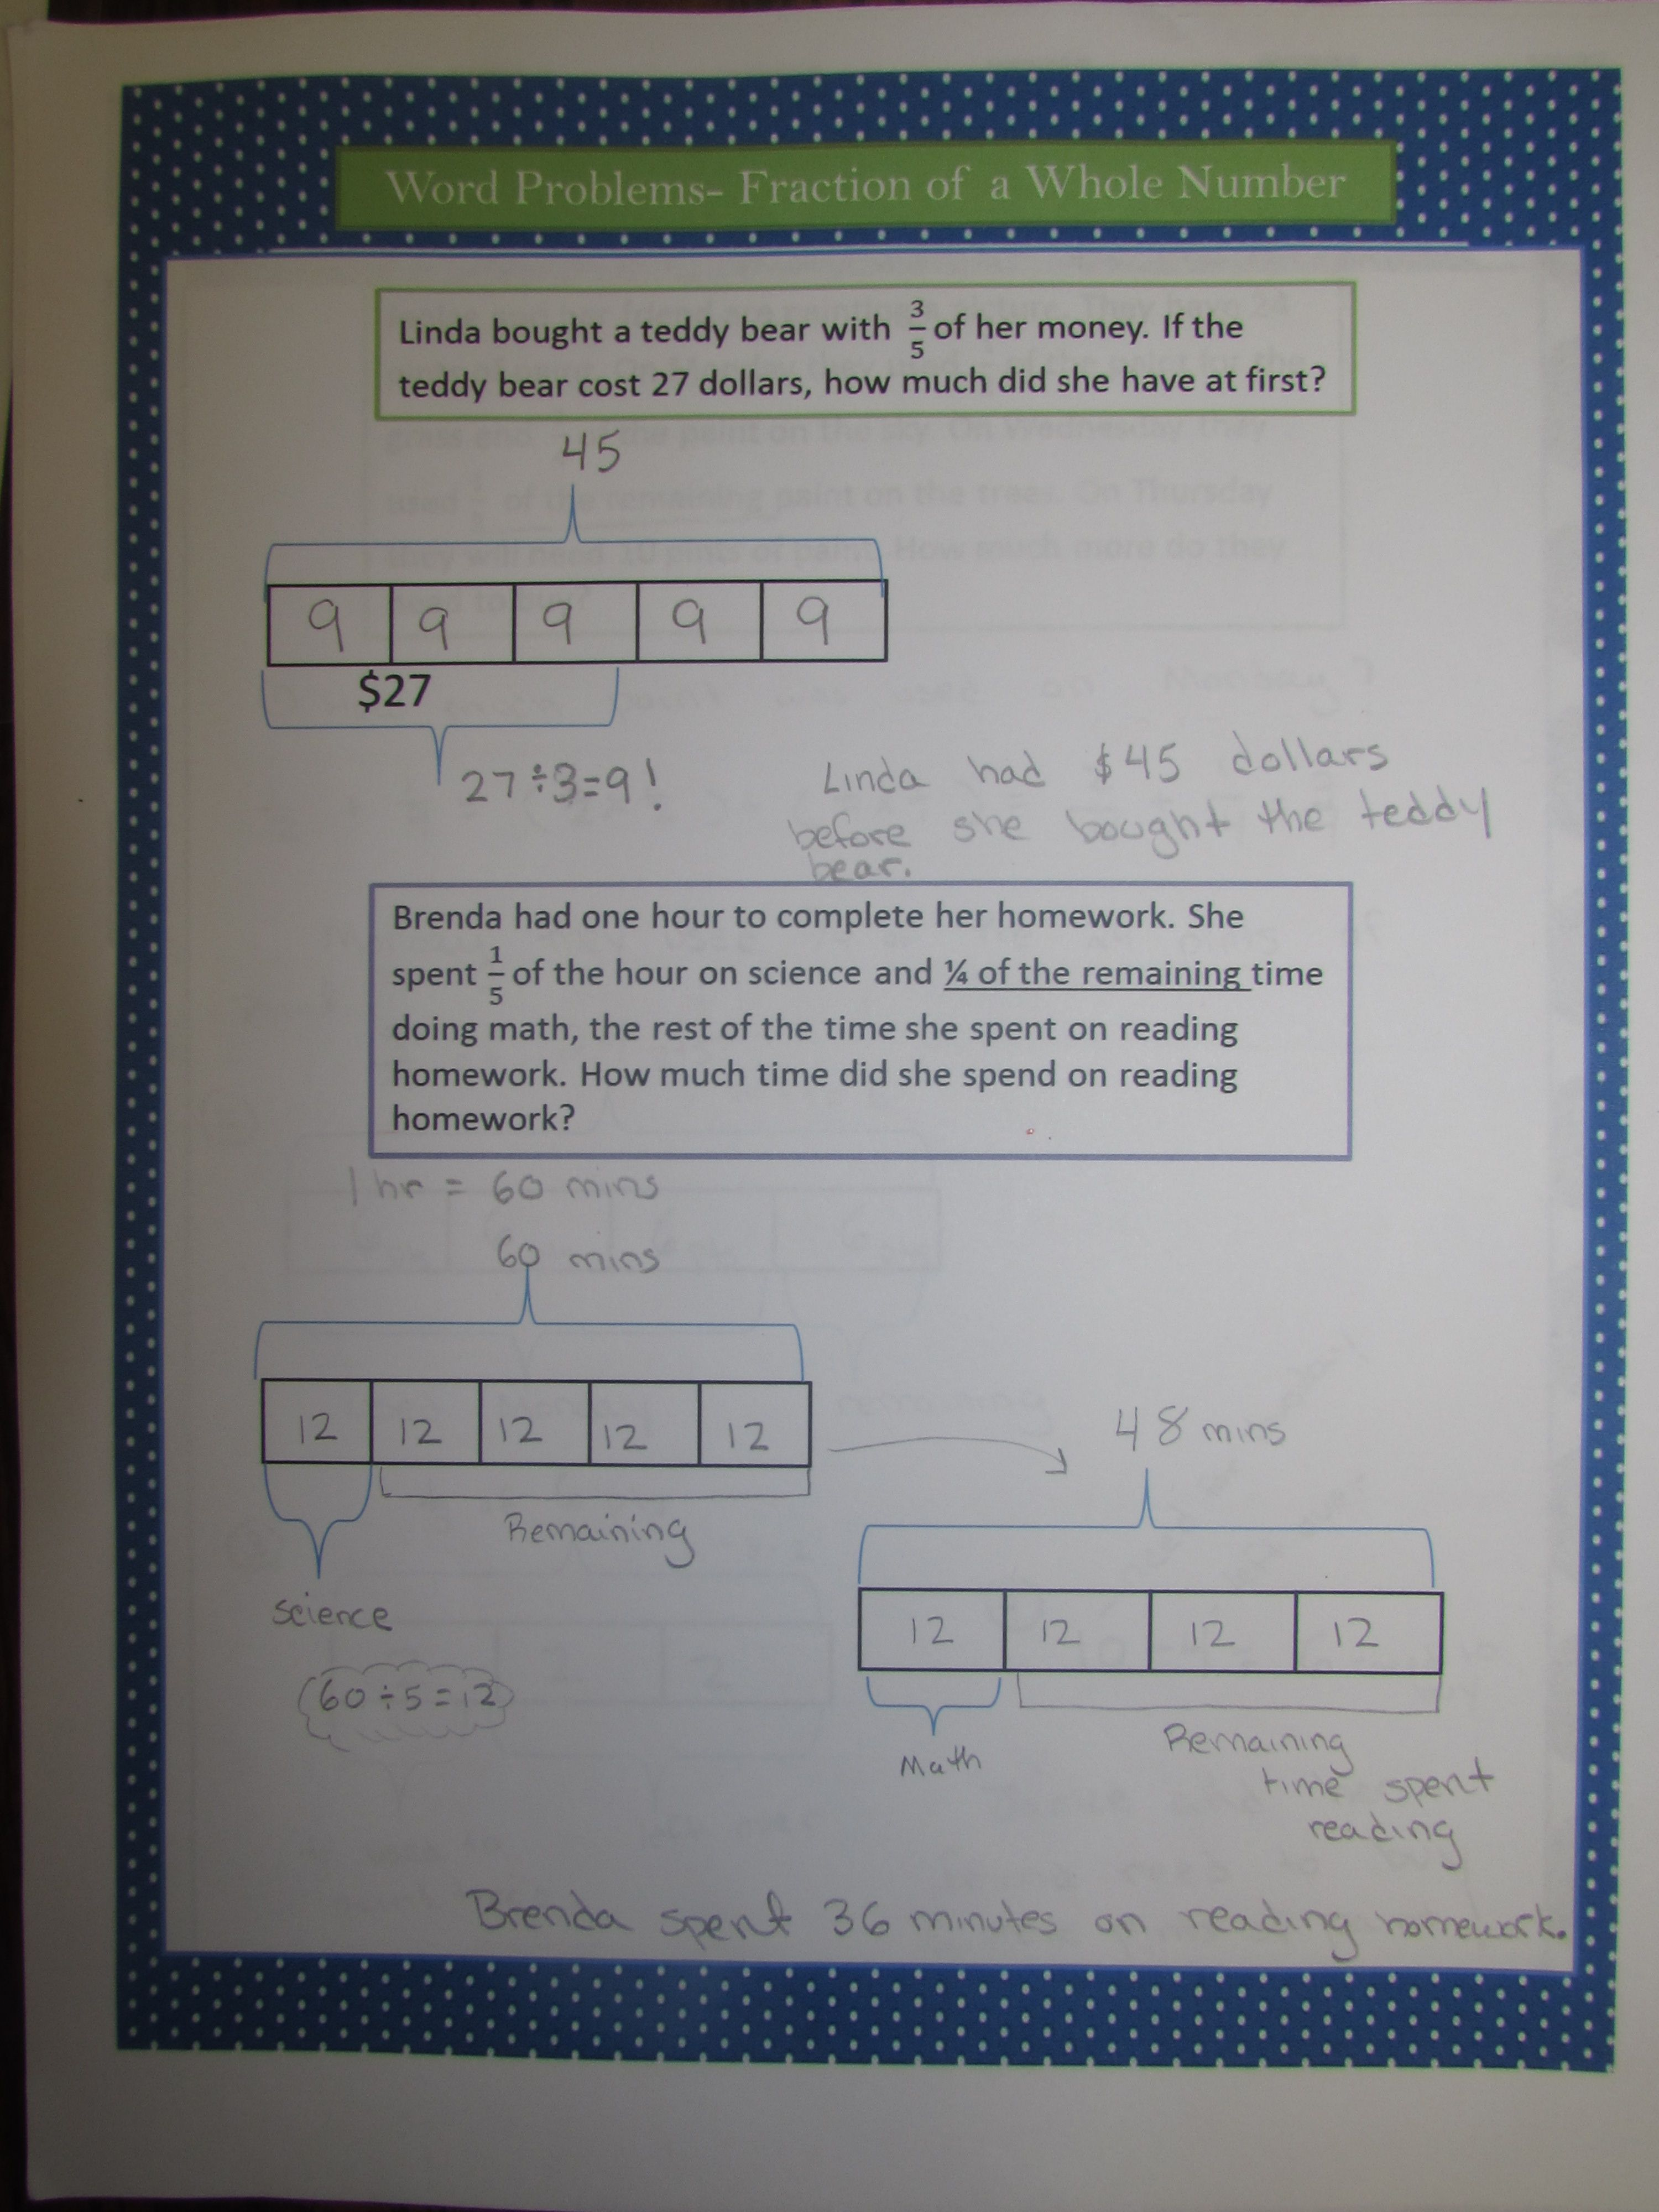 Tape Diagrams A Page Out Of The Common Core Word Problem Sample Book I Made For My Stud 6th Grade Worksheets Common Core Word Problems Grade 6 Math Worksheets